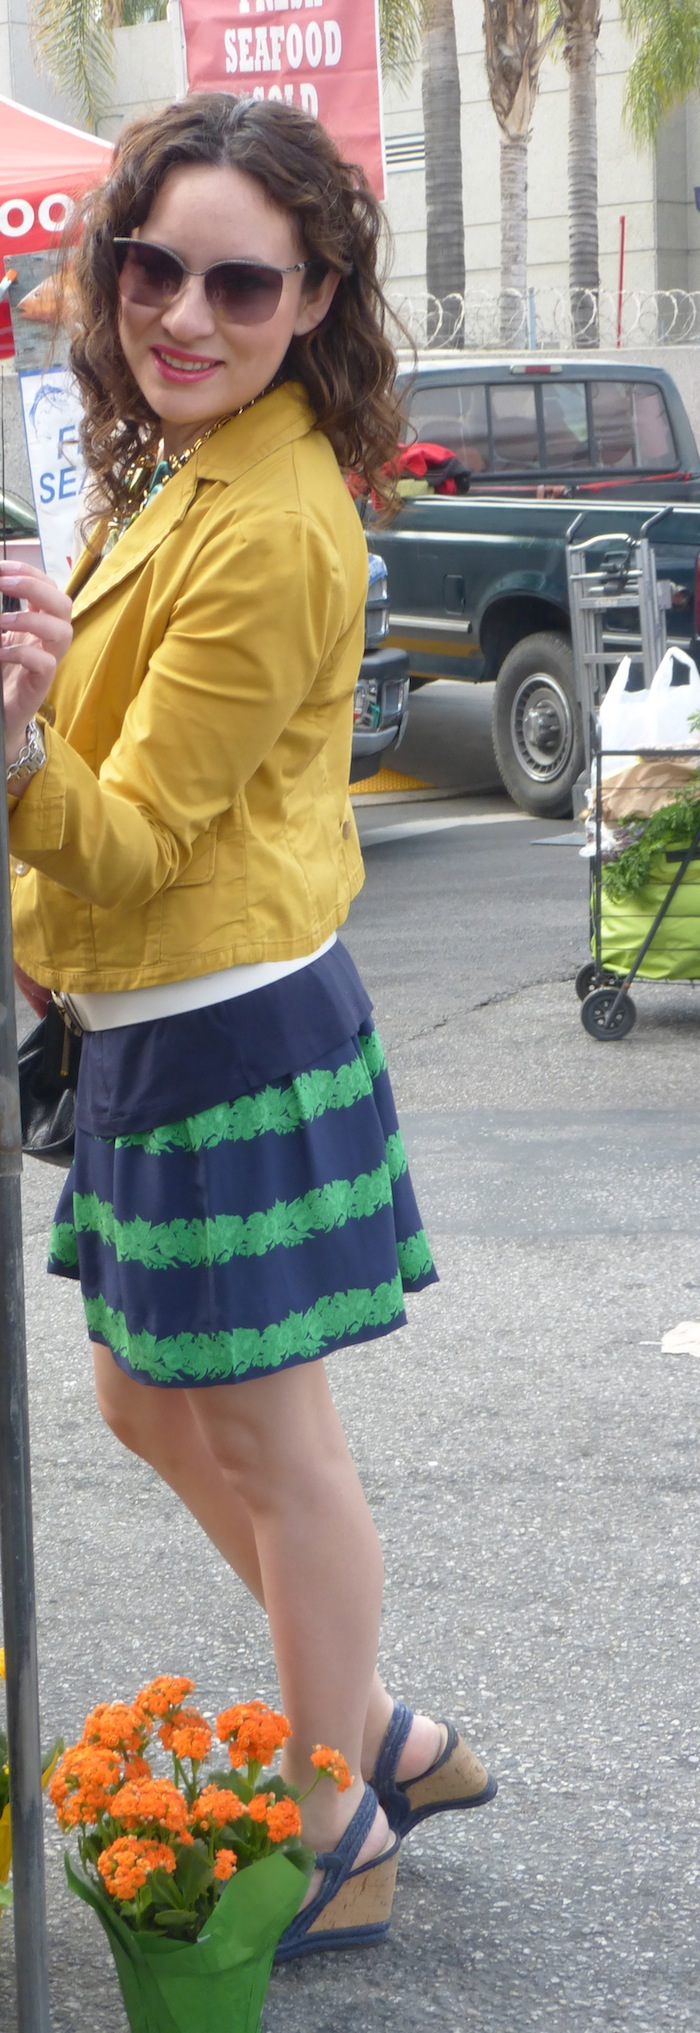 pring style trends skirts with wedges in bright colors